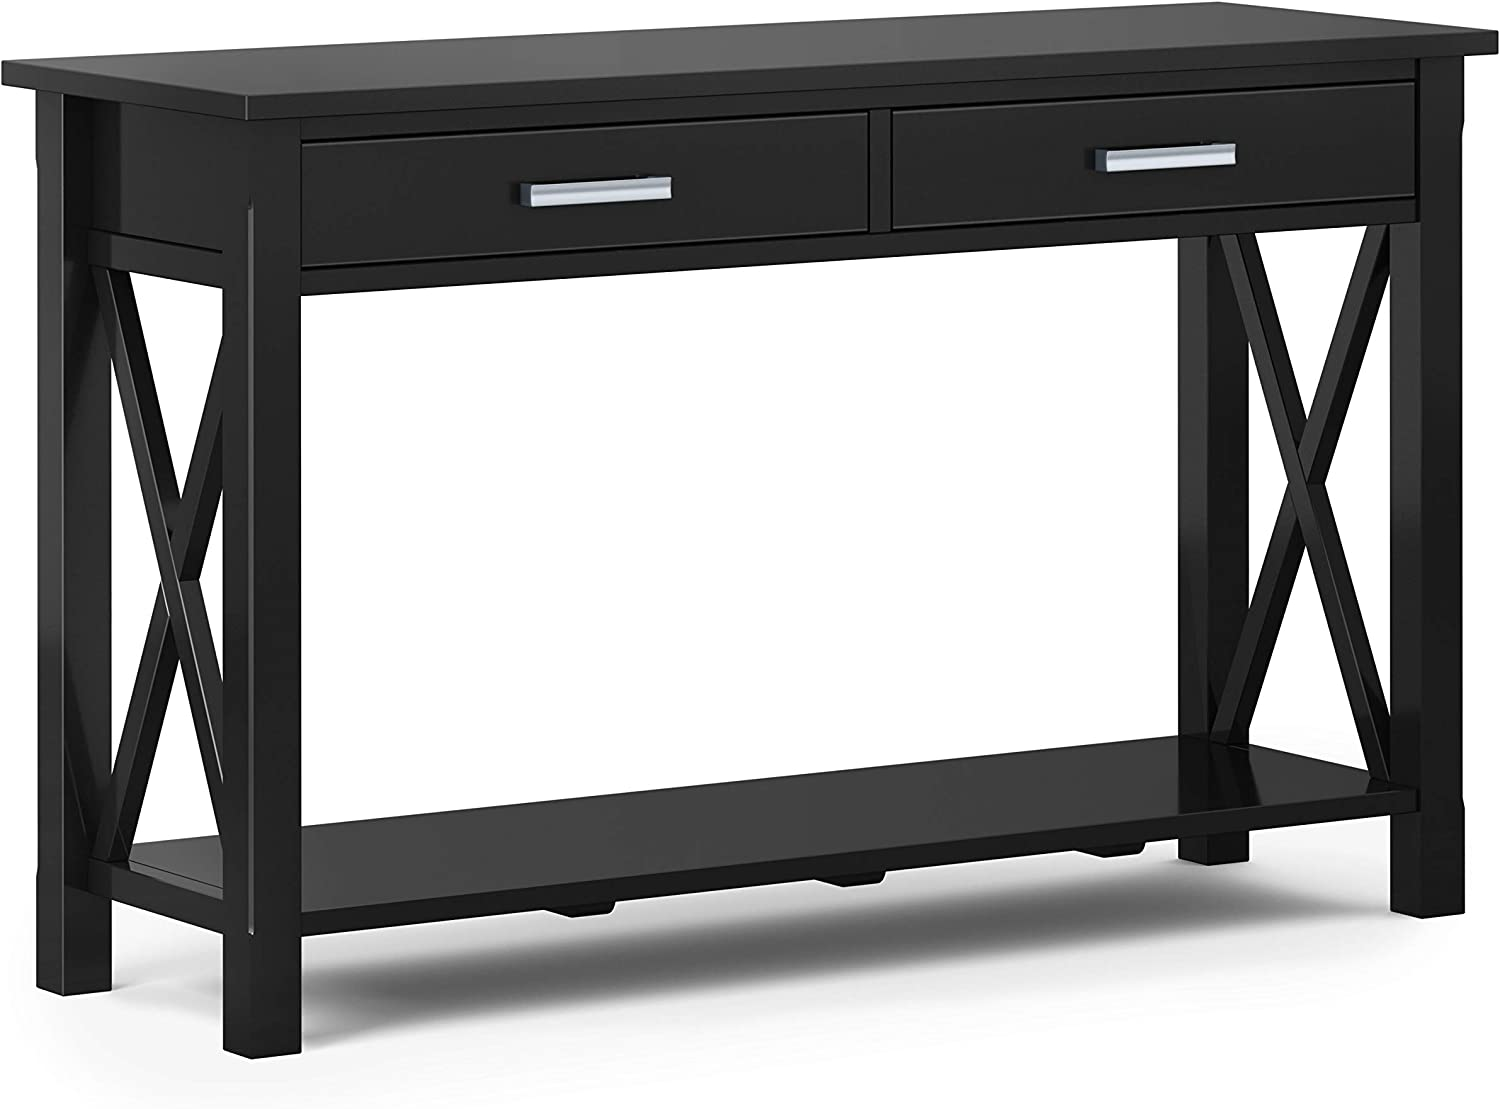 SIMPLIHOME Kitchener SOLID WOOD 47 inch Wide Contemporary Console Sofa Table in Black with Storage, 2 Drawers and 1 Shelf, for the Living Room Entryway and Bedroom